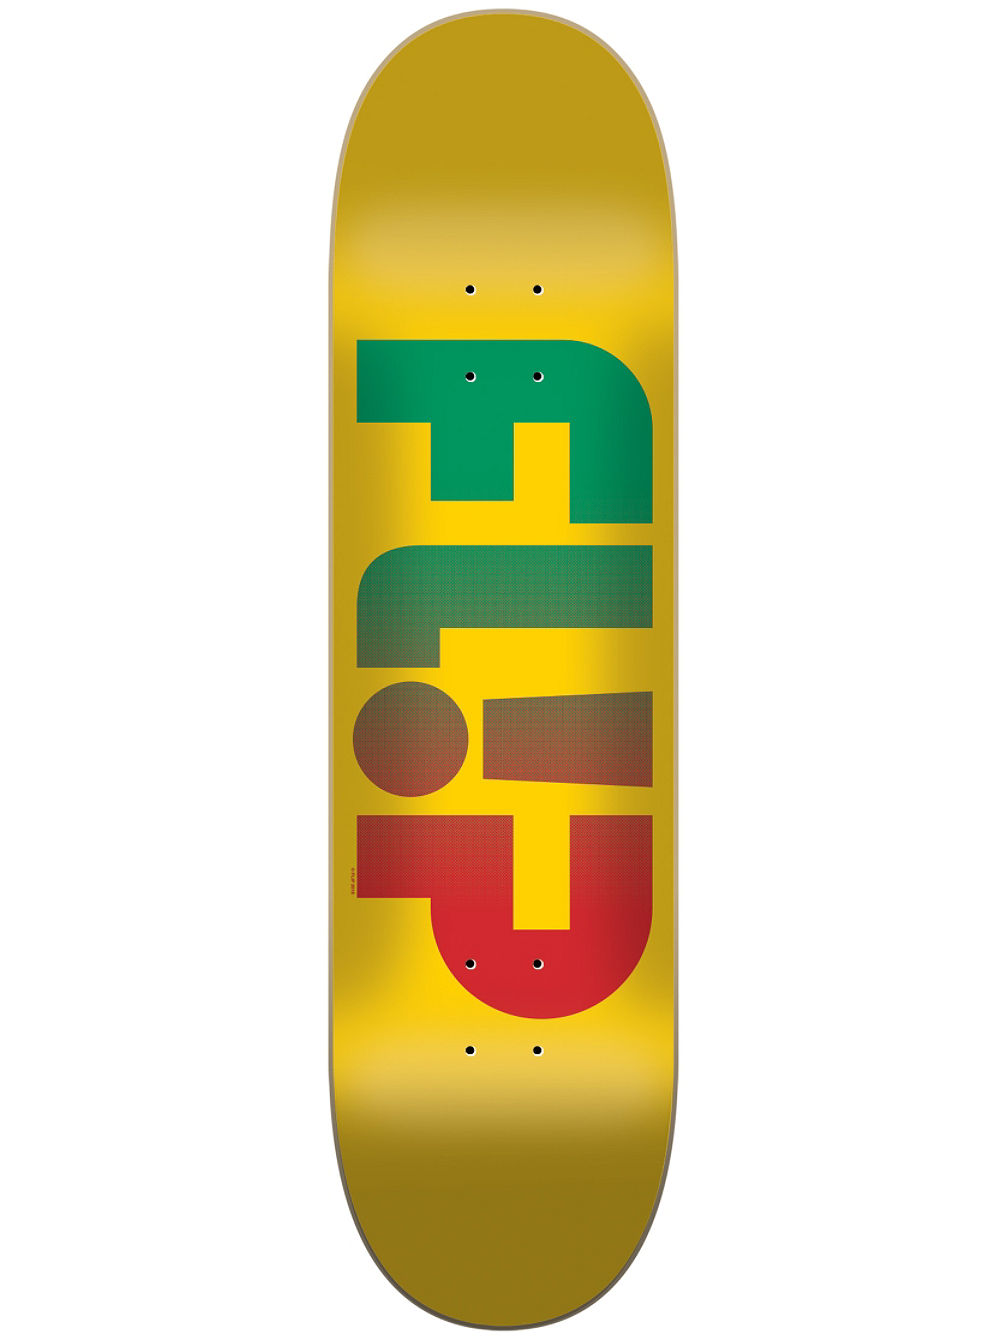 "Odyssey Faded Yellow 8.0"" Skate Deck"